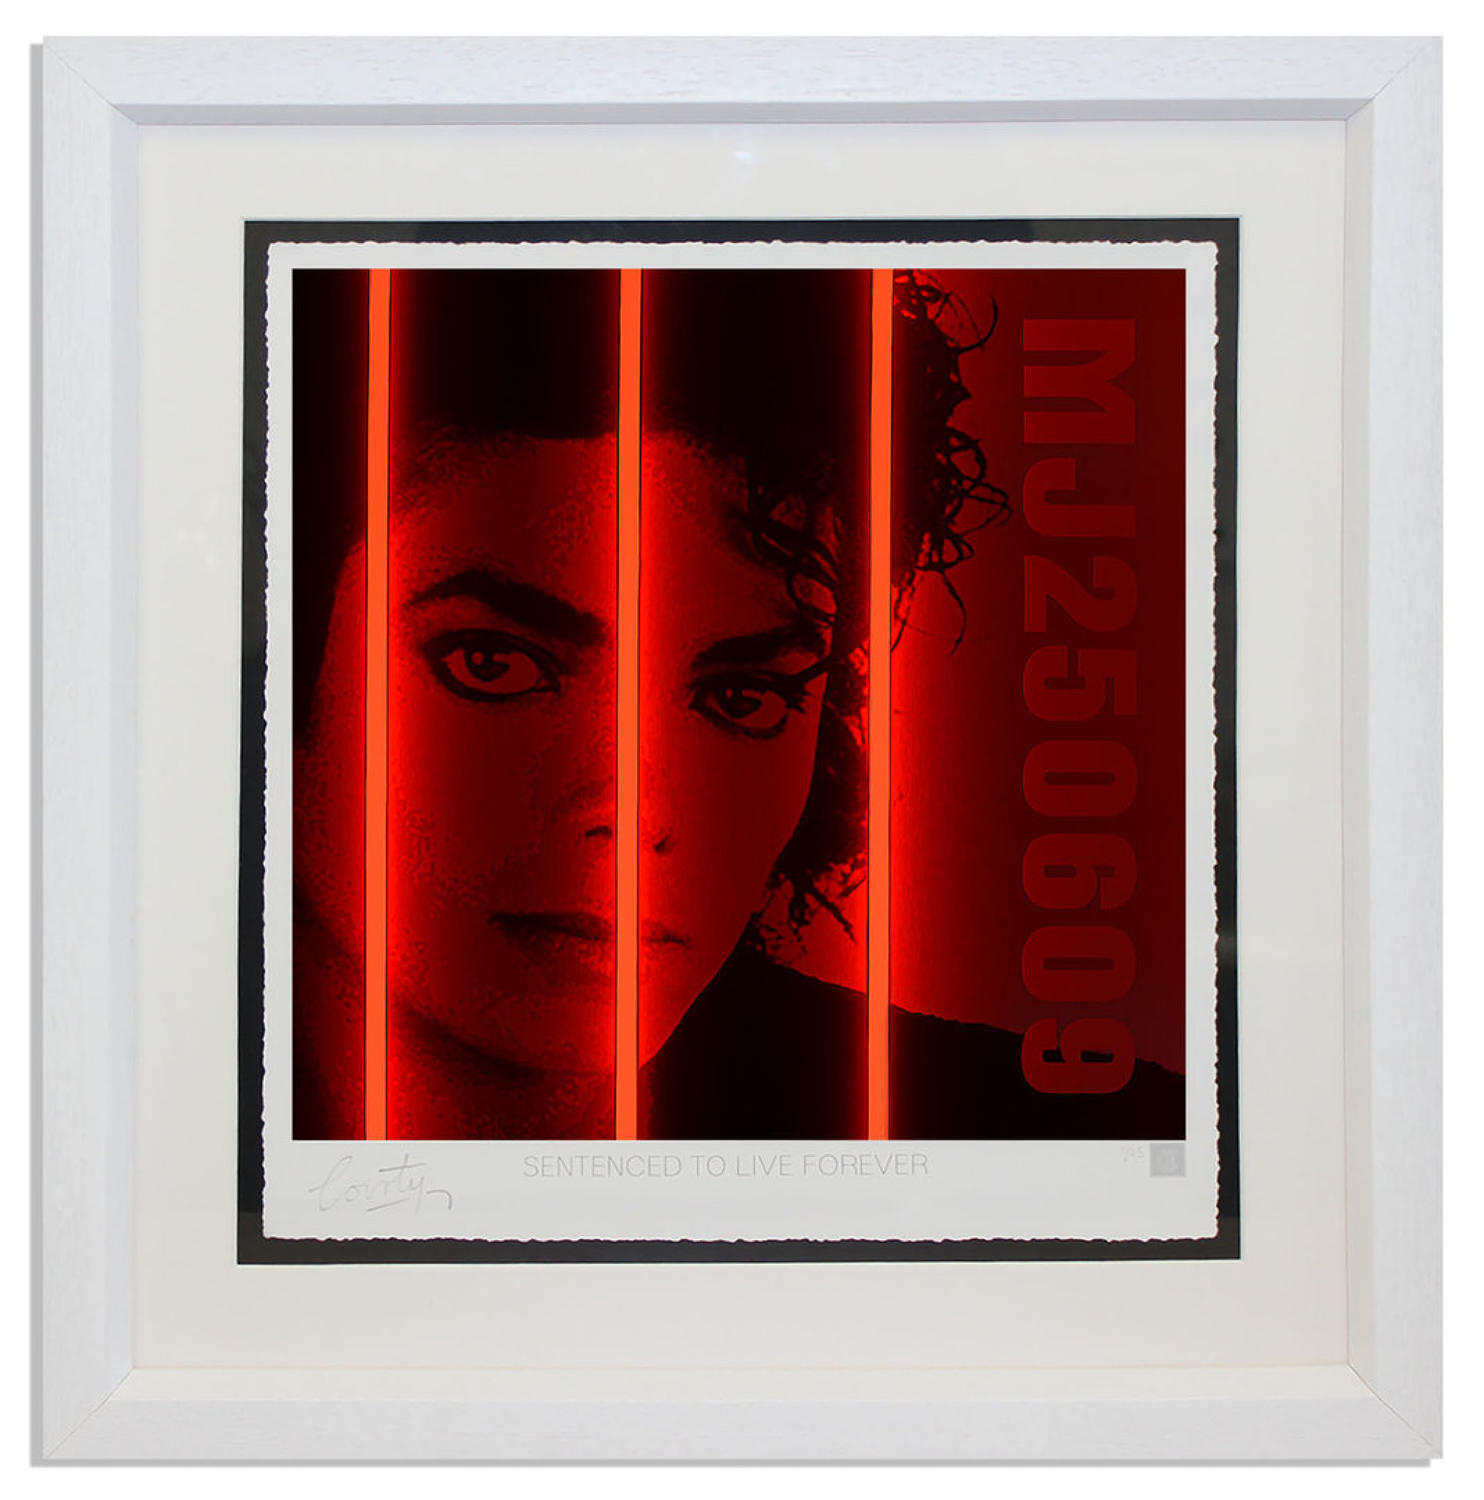 Courty - Michael Jackson - Life Series Framed art print